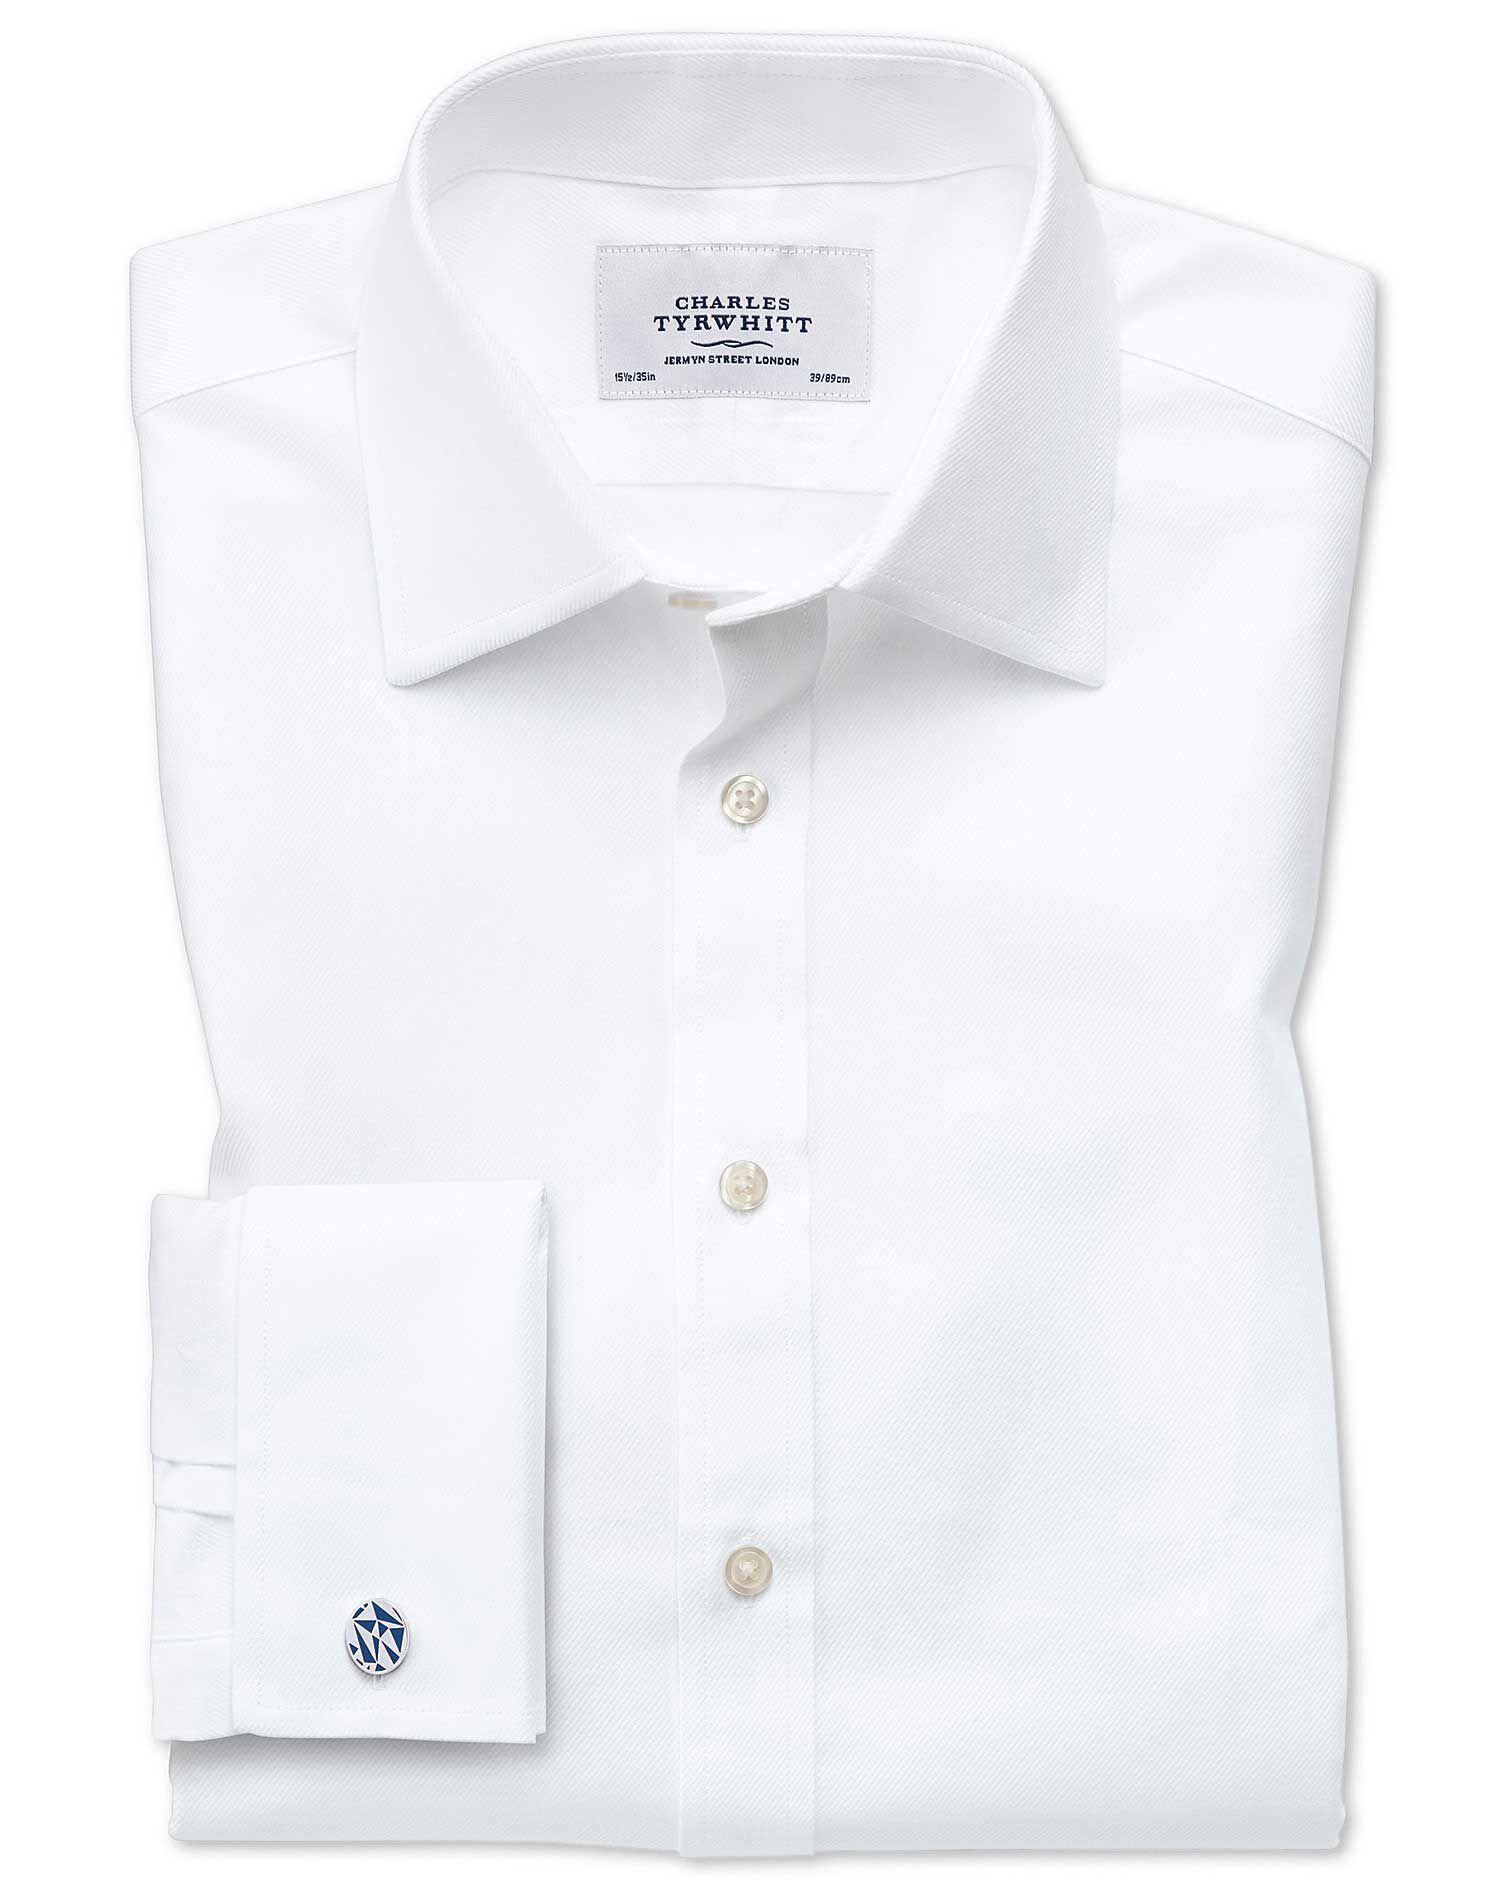 Classic Fit Egyptian Cotton Cavalry Twill White Formal Shirt Single Cuff Size 16/34 by Charles Tyrwh